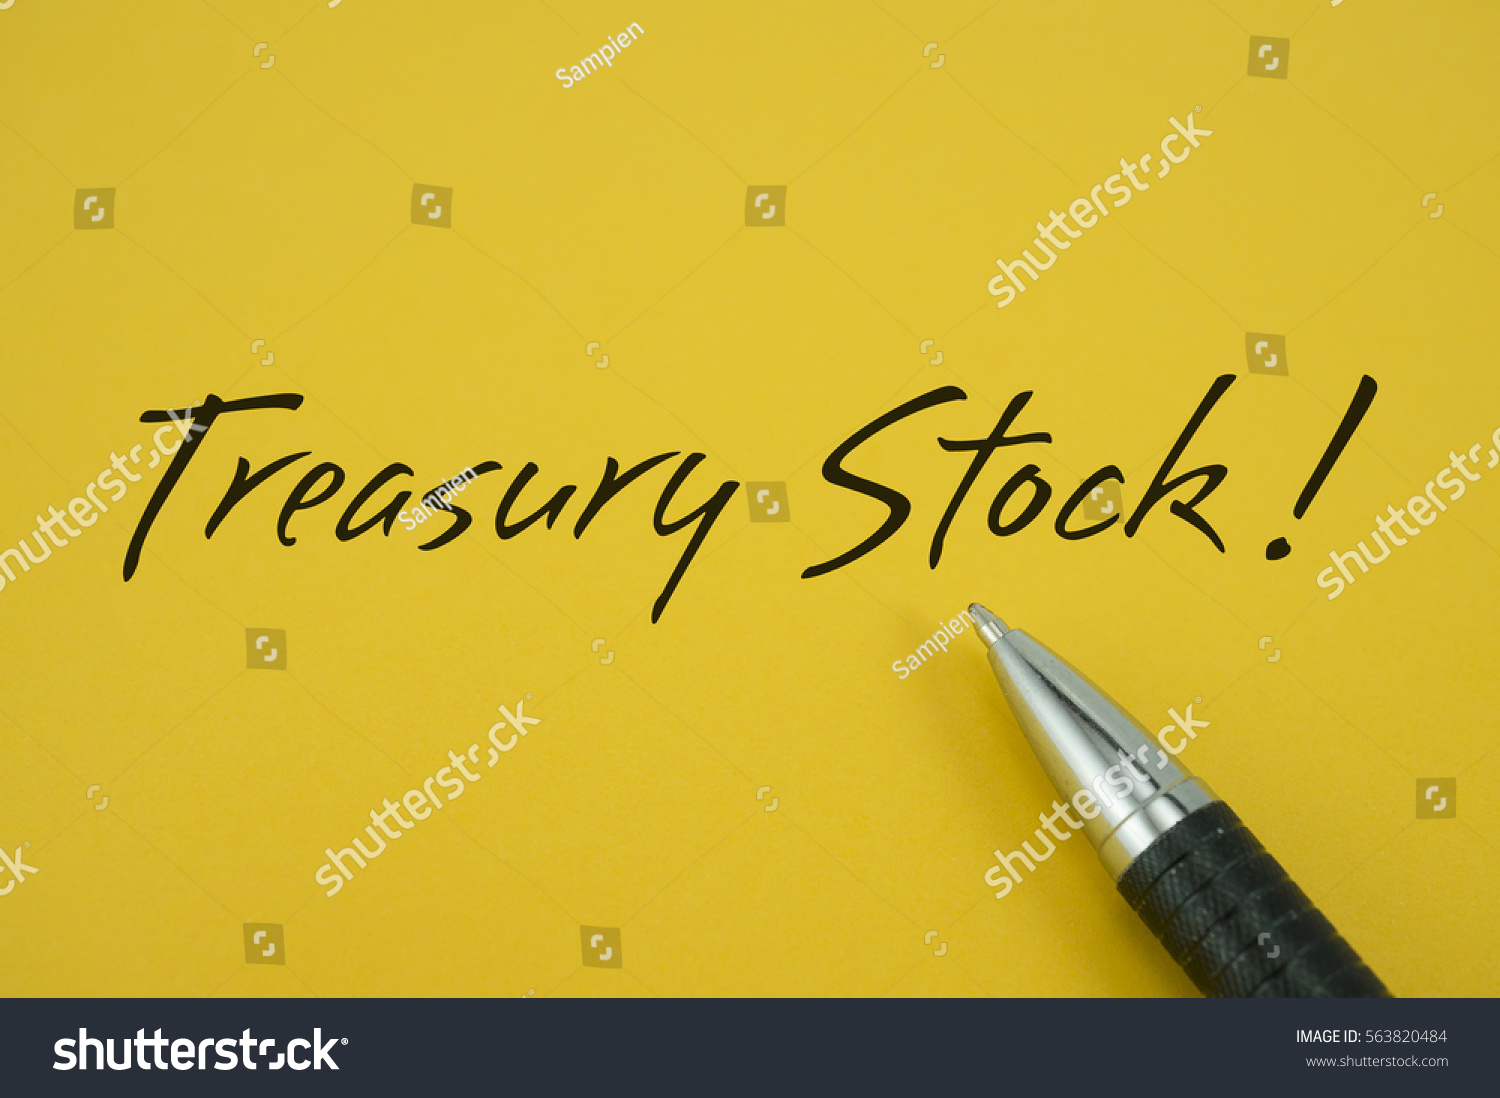 Treasury Stock Note Pen On Yellow Stock Illustration 563820484